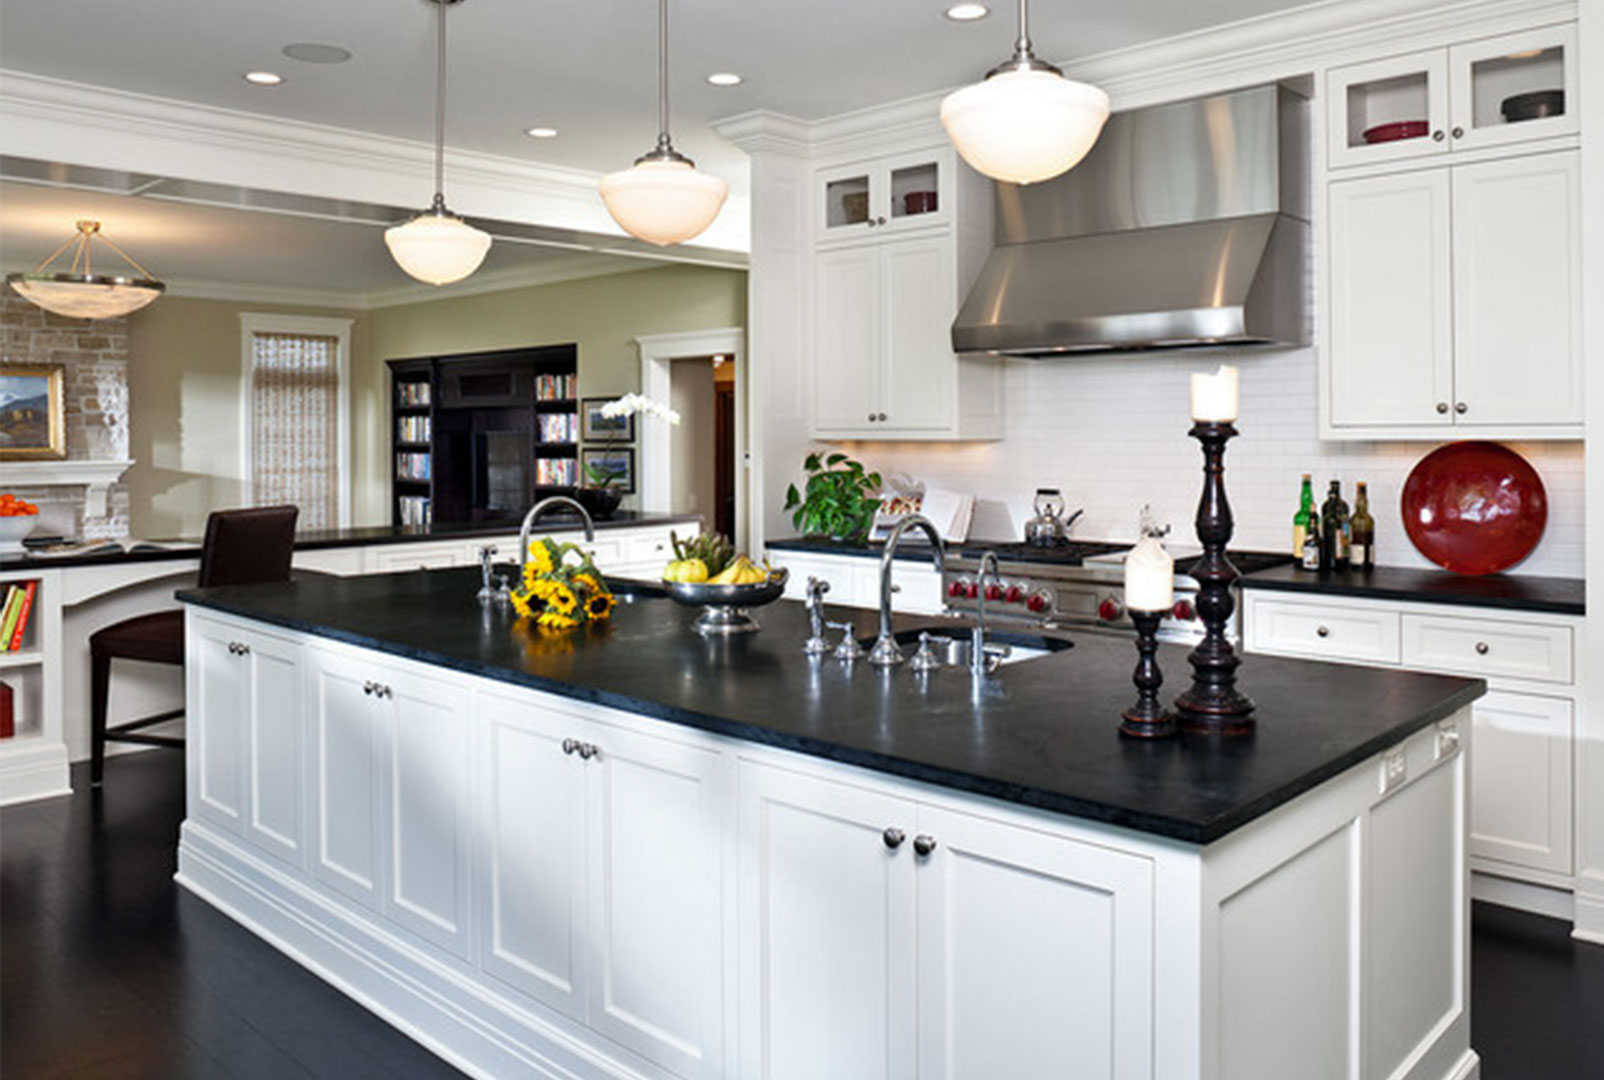 TAKE YOUR KITCHEN TO NEXT LEVEL WITH THESE 28 MODERN